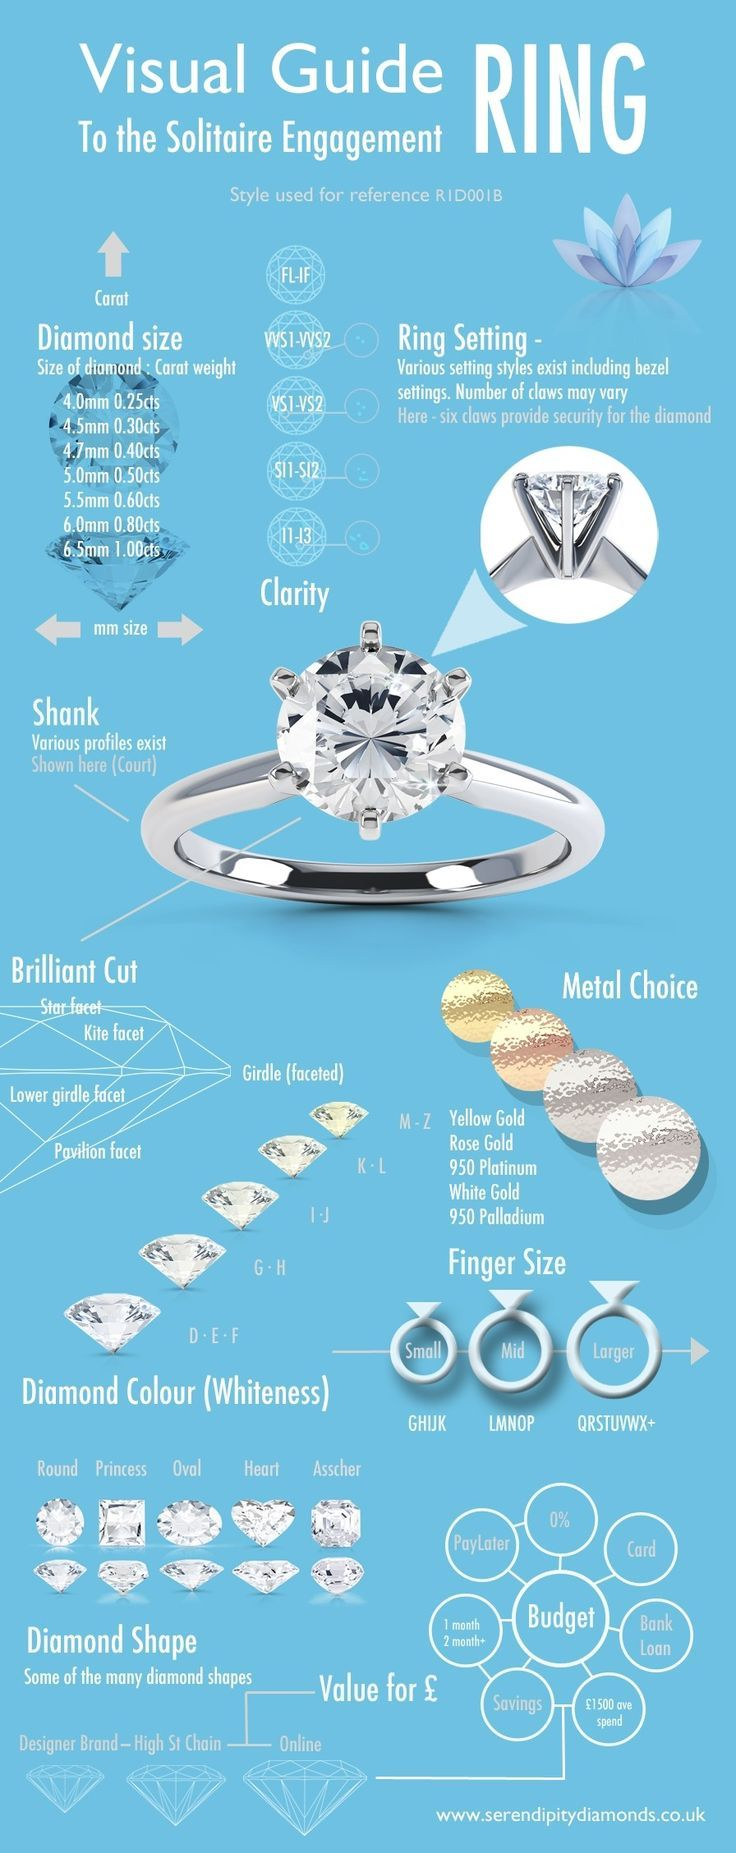 interesting....at the bottom does that mean that buying a ring online is cheaper for a bigger diamond?   A visual guide to the solitaire engagement ring